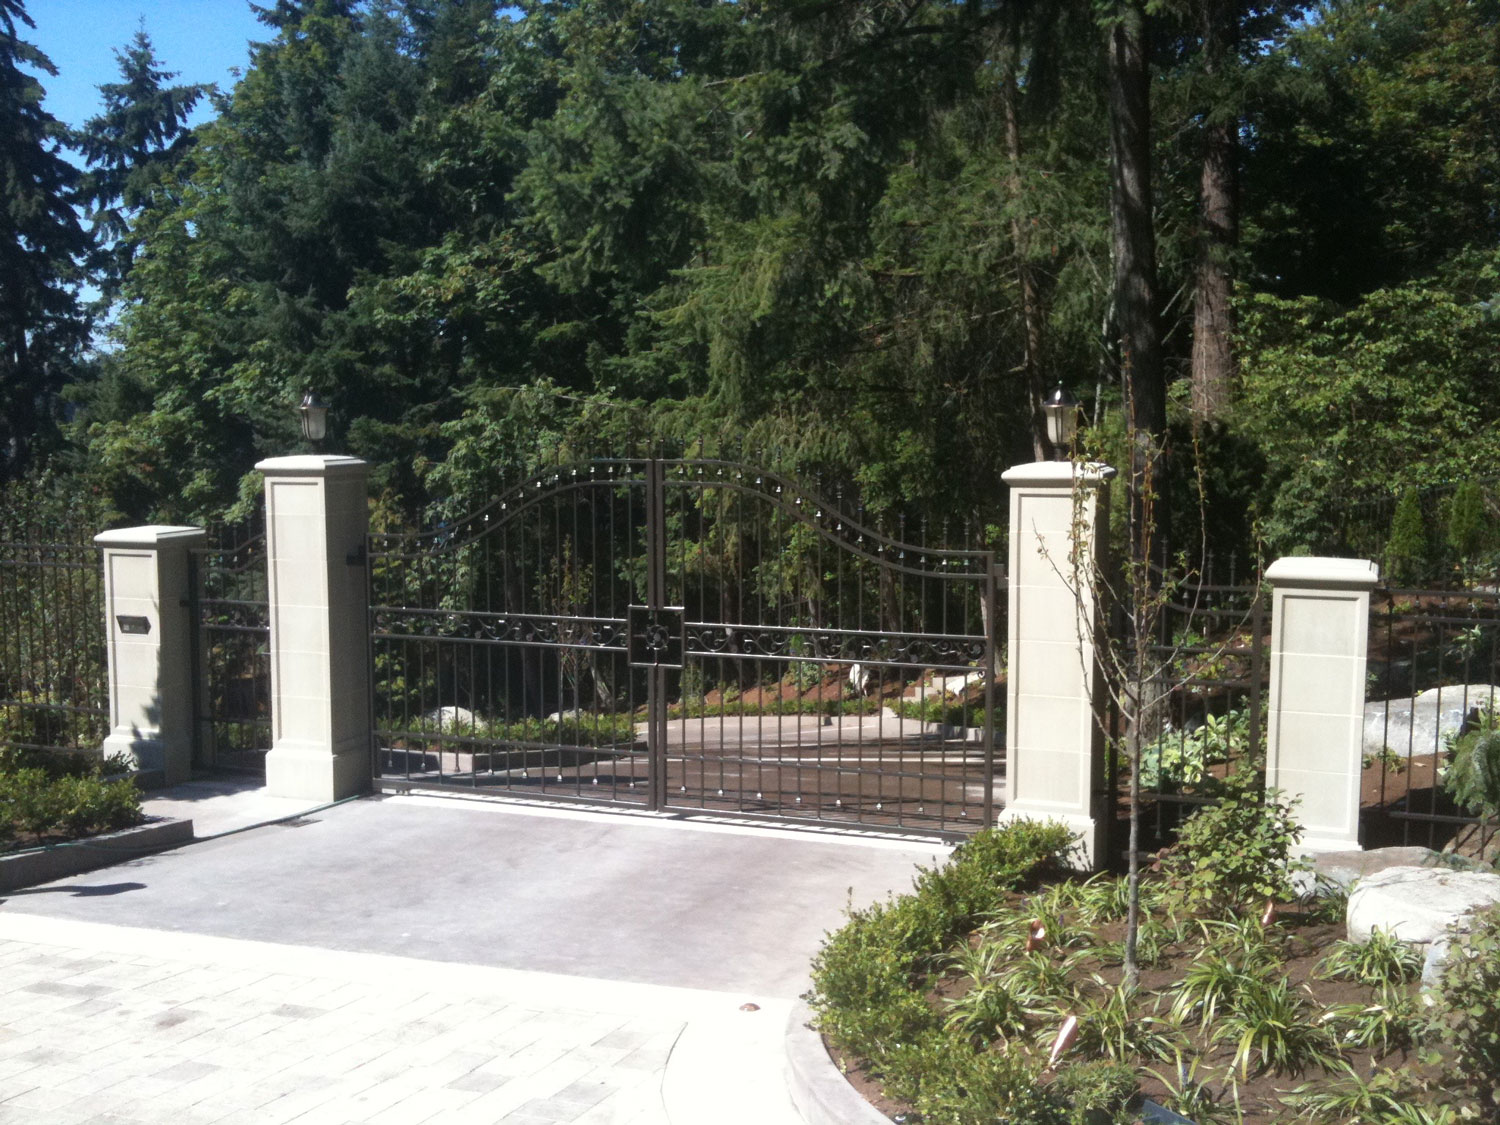 Automatic Gate and Fence - Entrance - Seattle, WA